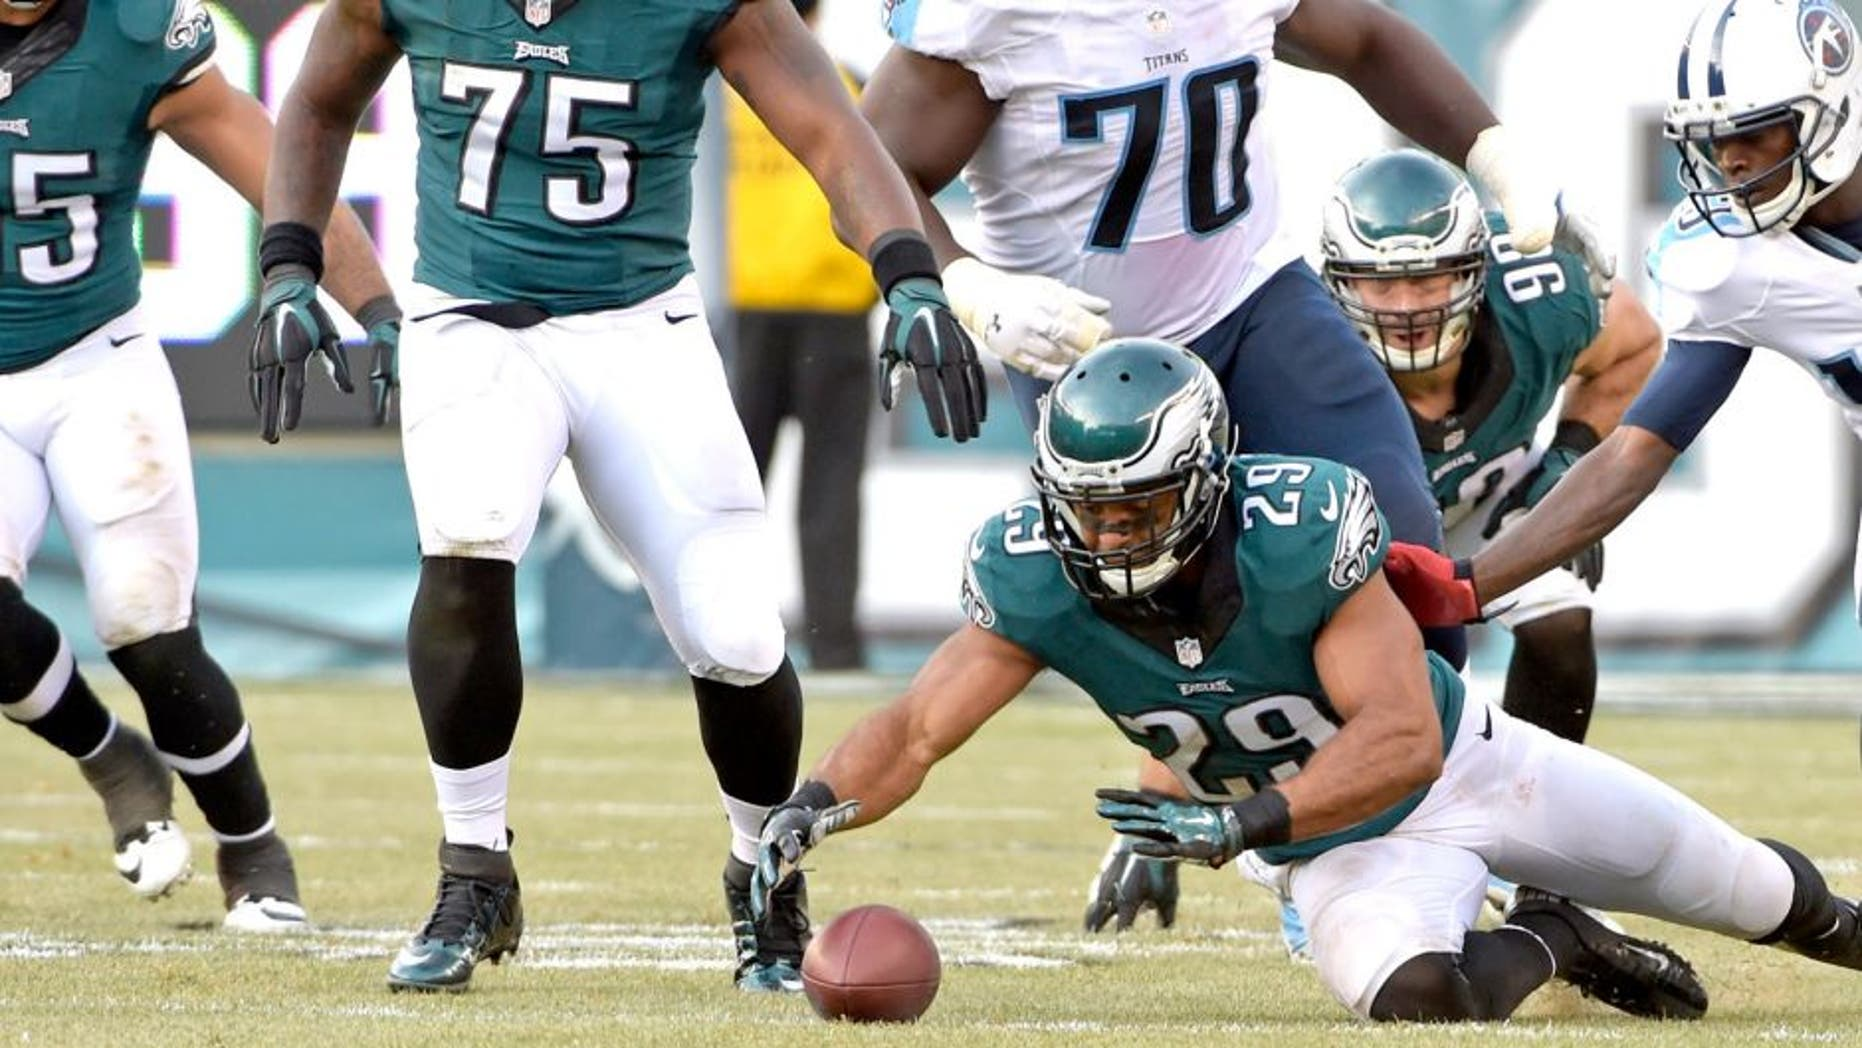 Nov 23, 2014; Philadelphia, PA, USA; Philadelphia Eagles strong safety Nate Allen (29) recovers a fumble during third quarter against the Tennessee Titans at Lincoln Financial Field. The Eagles defeated the Titans, 43-24. Mandatory Credit: Eric Hartline-USA TODAY Sports